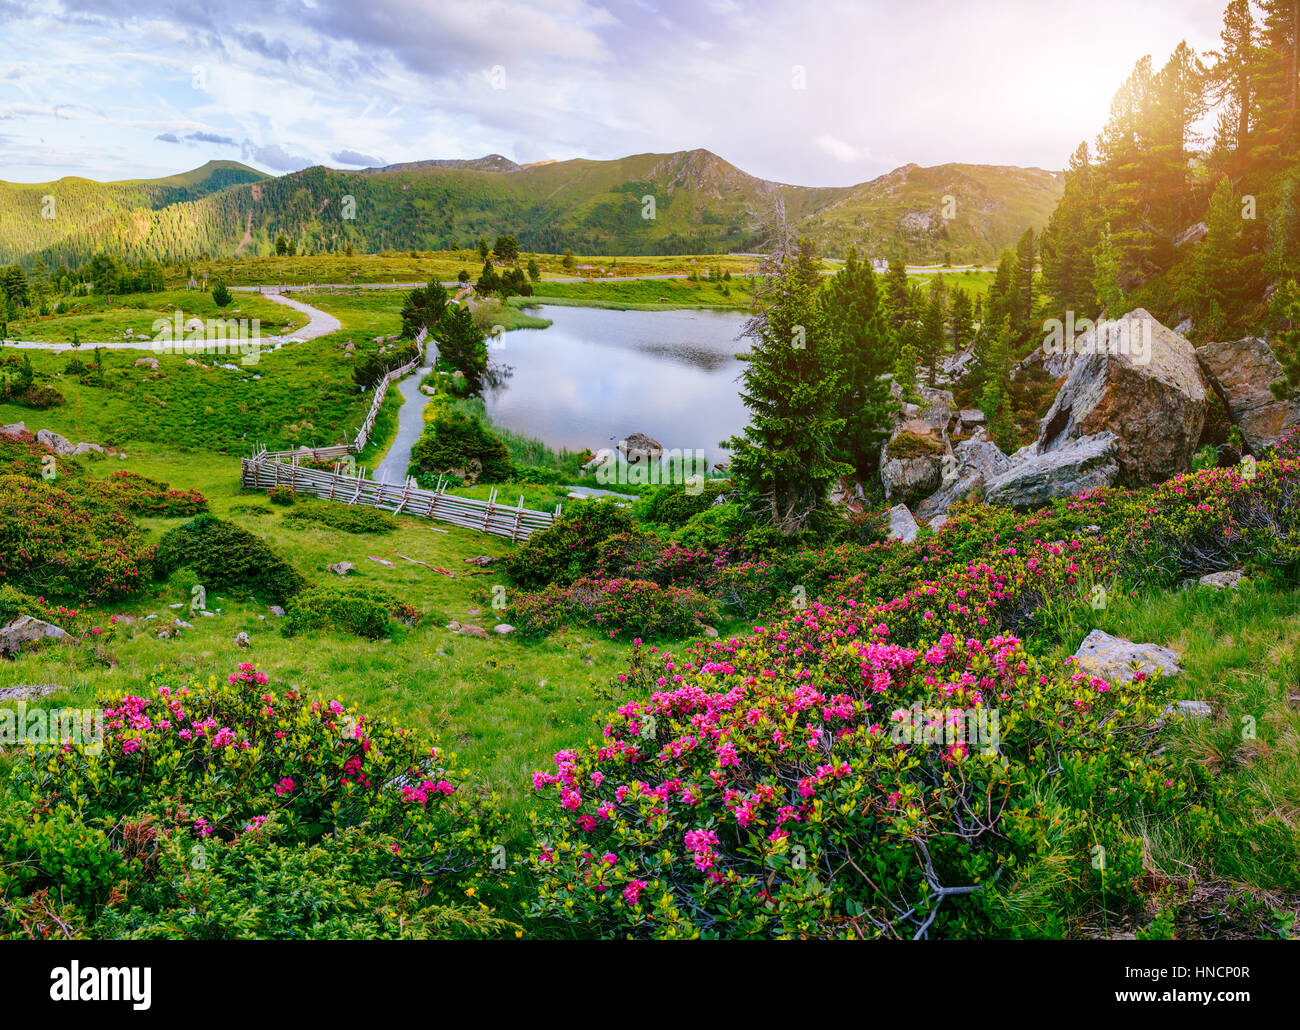 Glade With Flowers Near The Water In Mountains Stock Photo